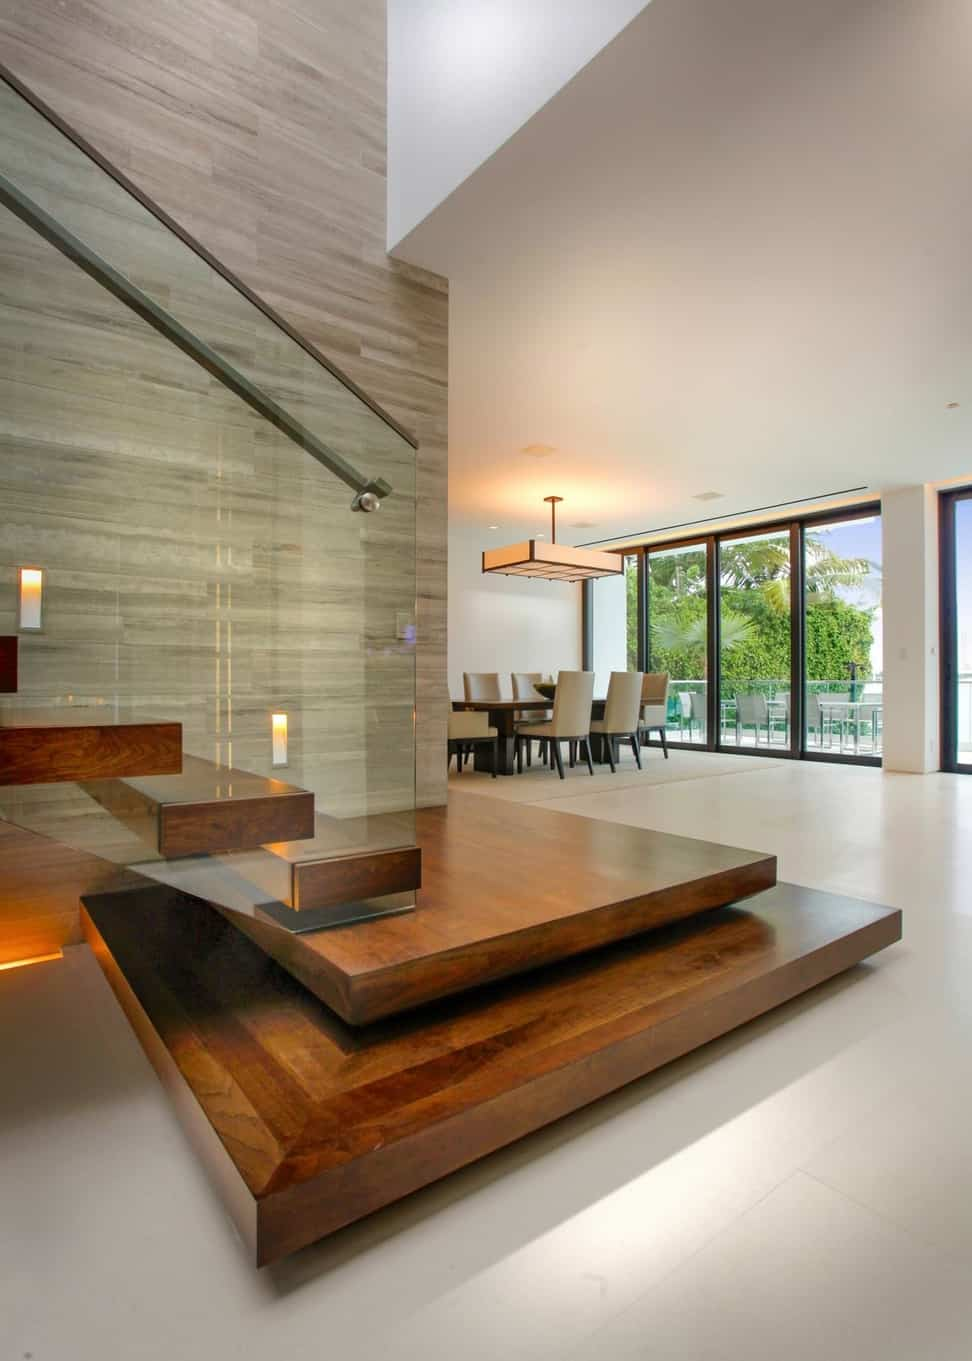 photos hgtv modern staircase with floating wood steps glass railing interior glass railings interior design contemporary interior design school nyc blogs commercial designers apps app websit